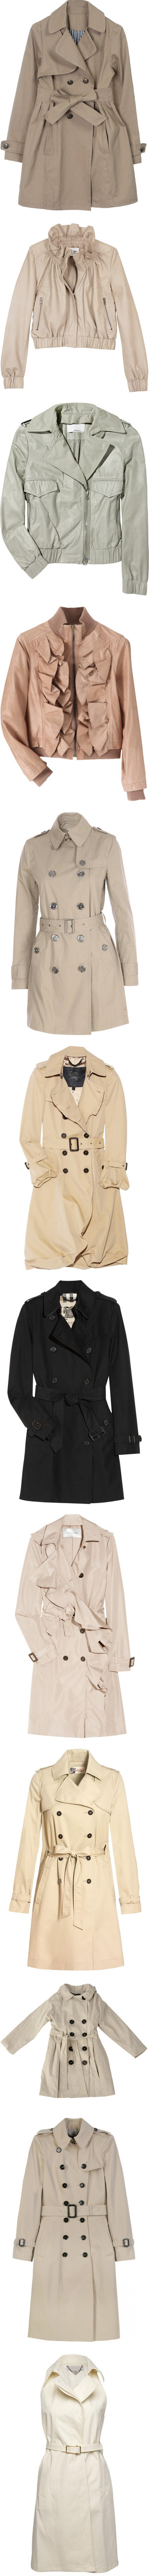 Outers by shidatja on Polyvore featuring women's fashion, jackets, coats, outerwear, tops, верхняя одежда, women, bomber style jacket, day birger et mikkelsen and flight bomber jacket